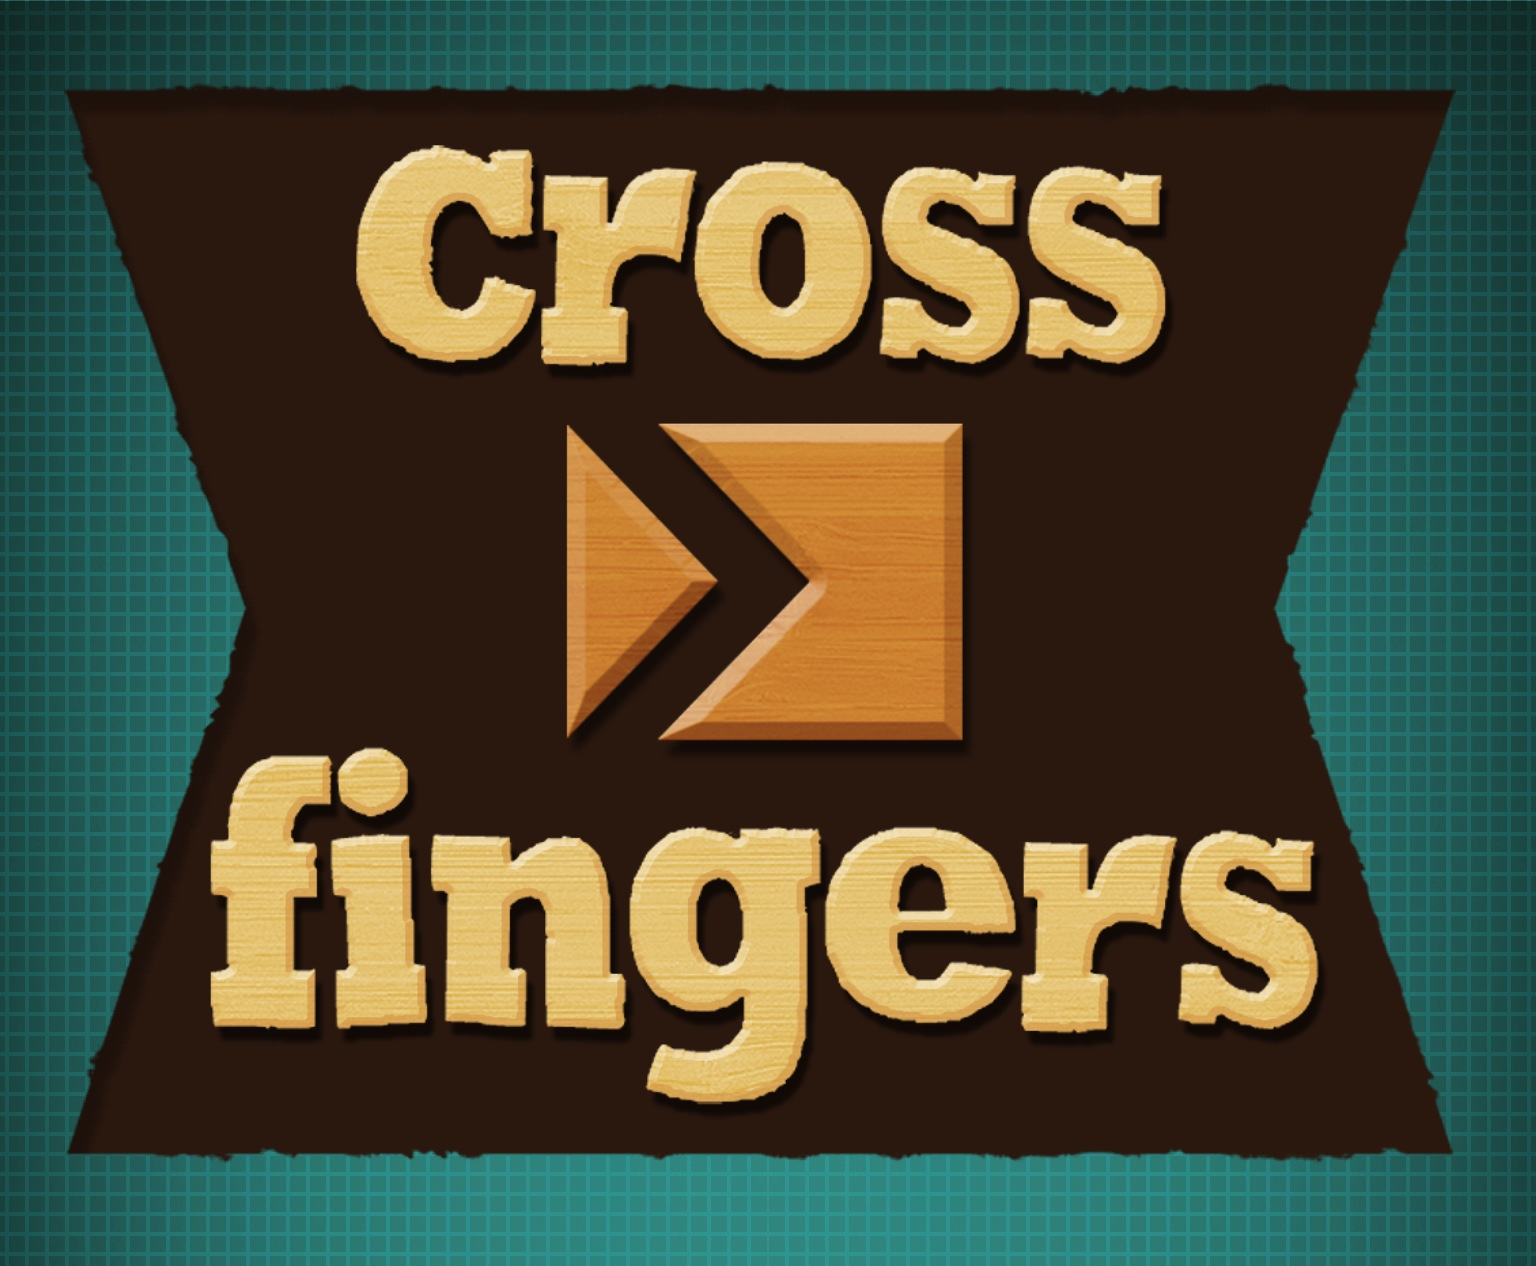 Cross Fingers' New Puzzle Packs Are Finger-Crossin' Good